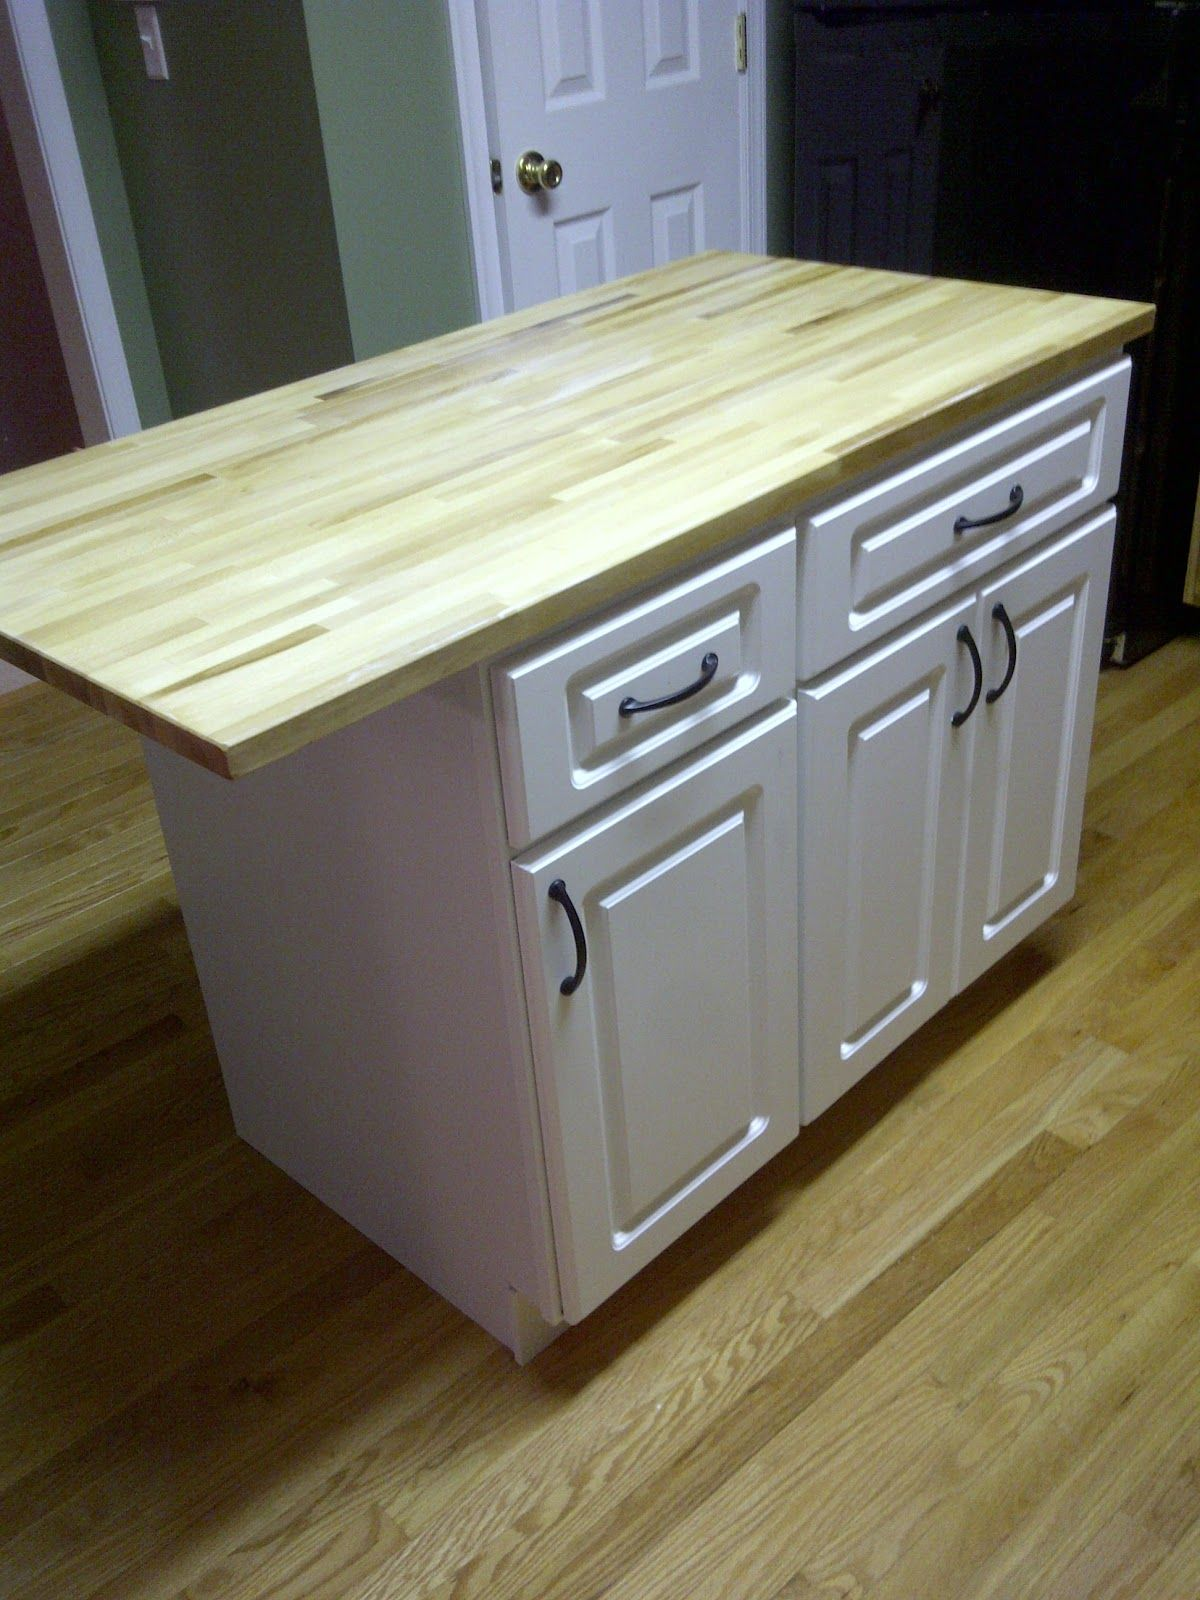 diy kitchen island cheap kitchen cabinets and a countertop easy to put together if only on kitchen island ideas cheap id=29581